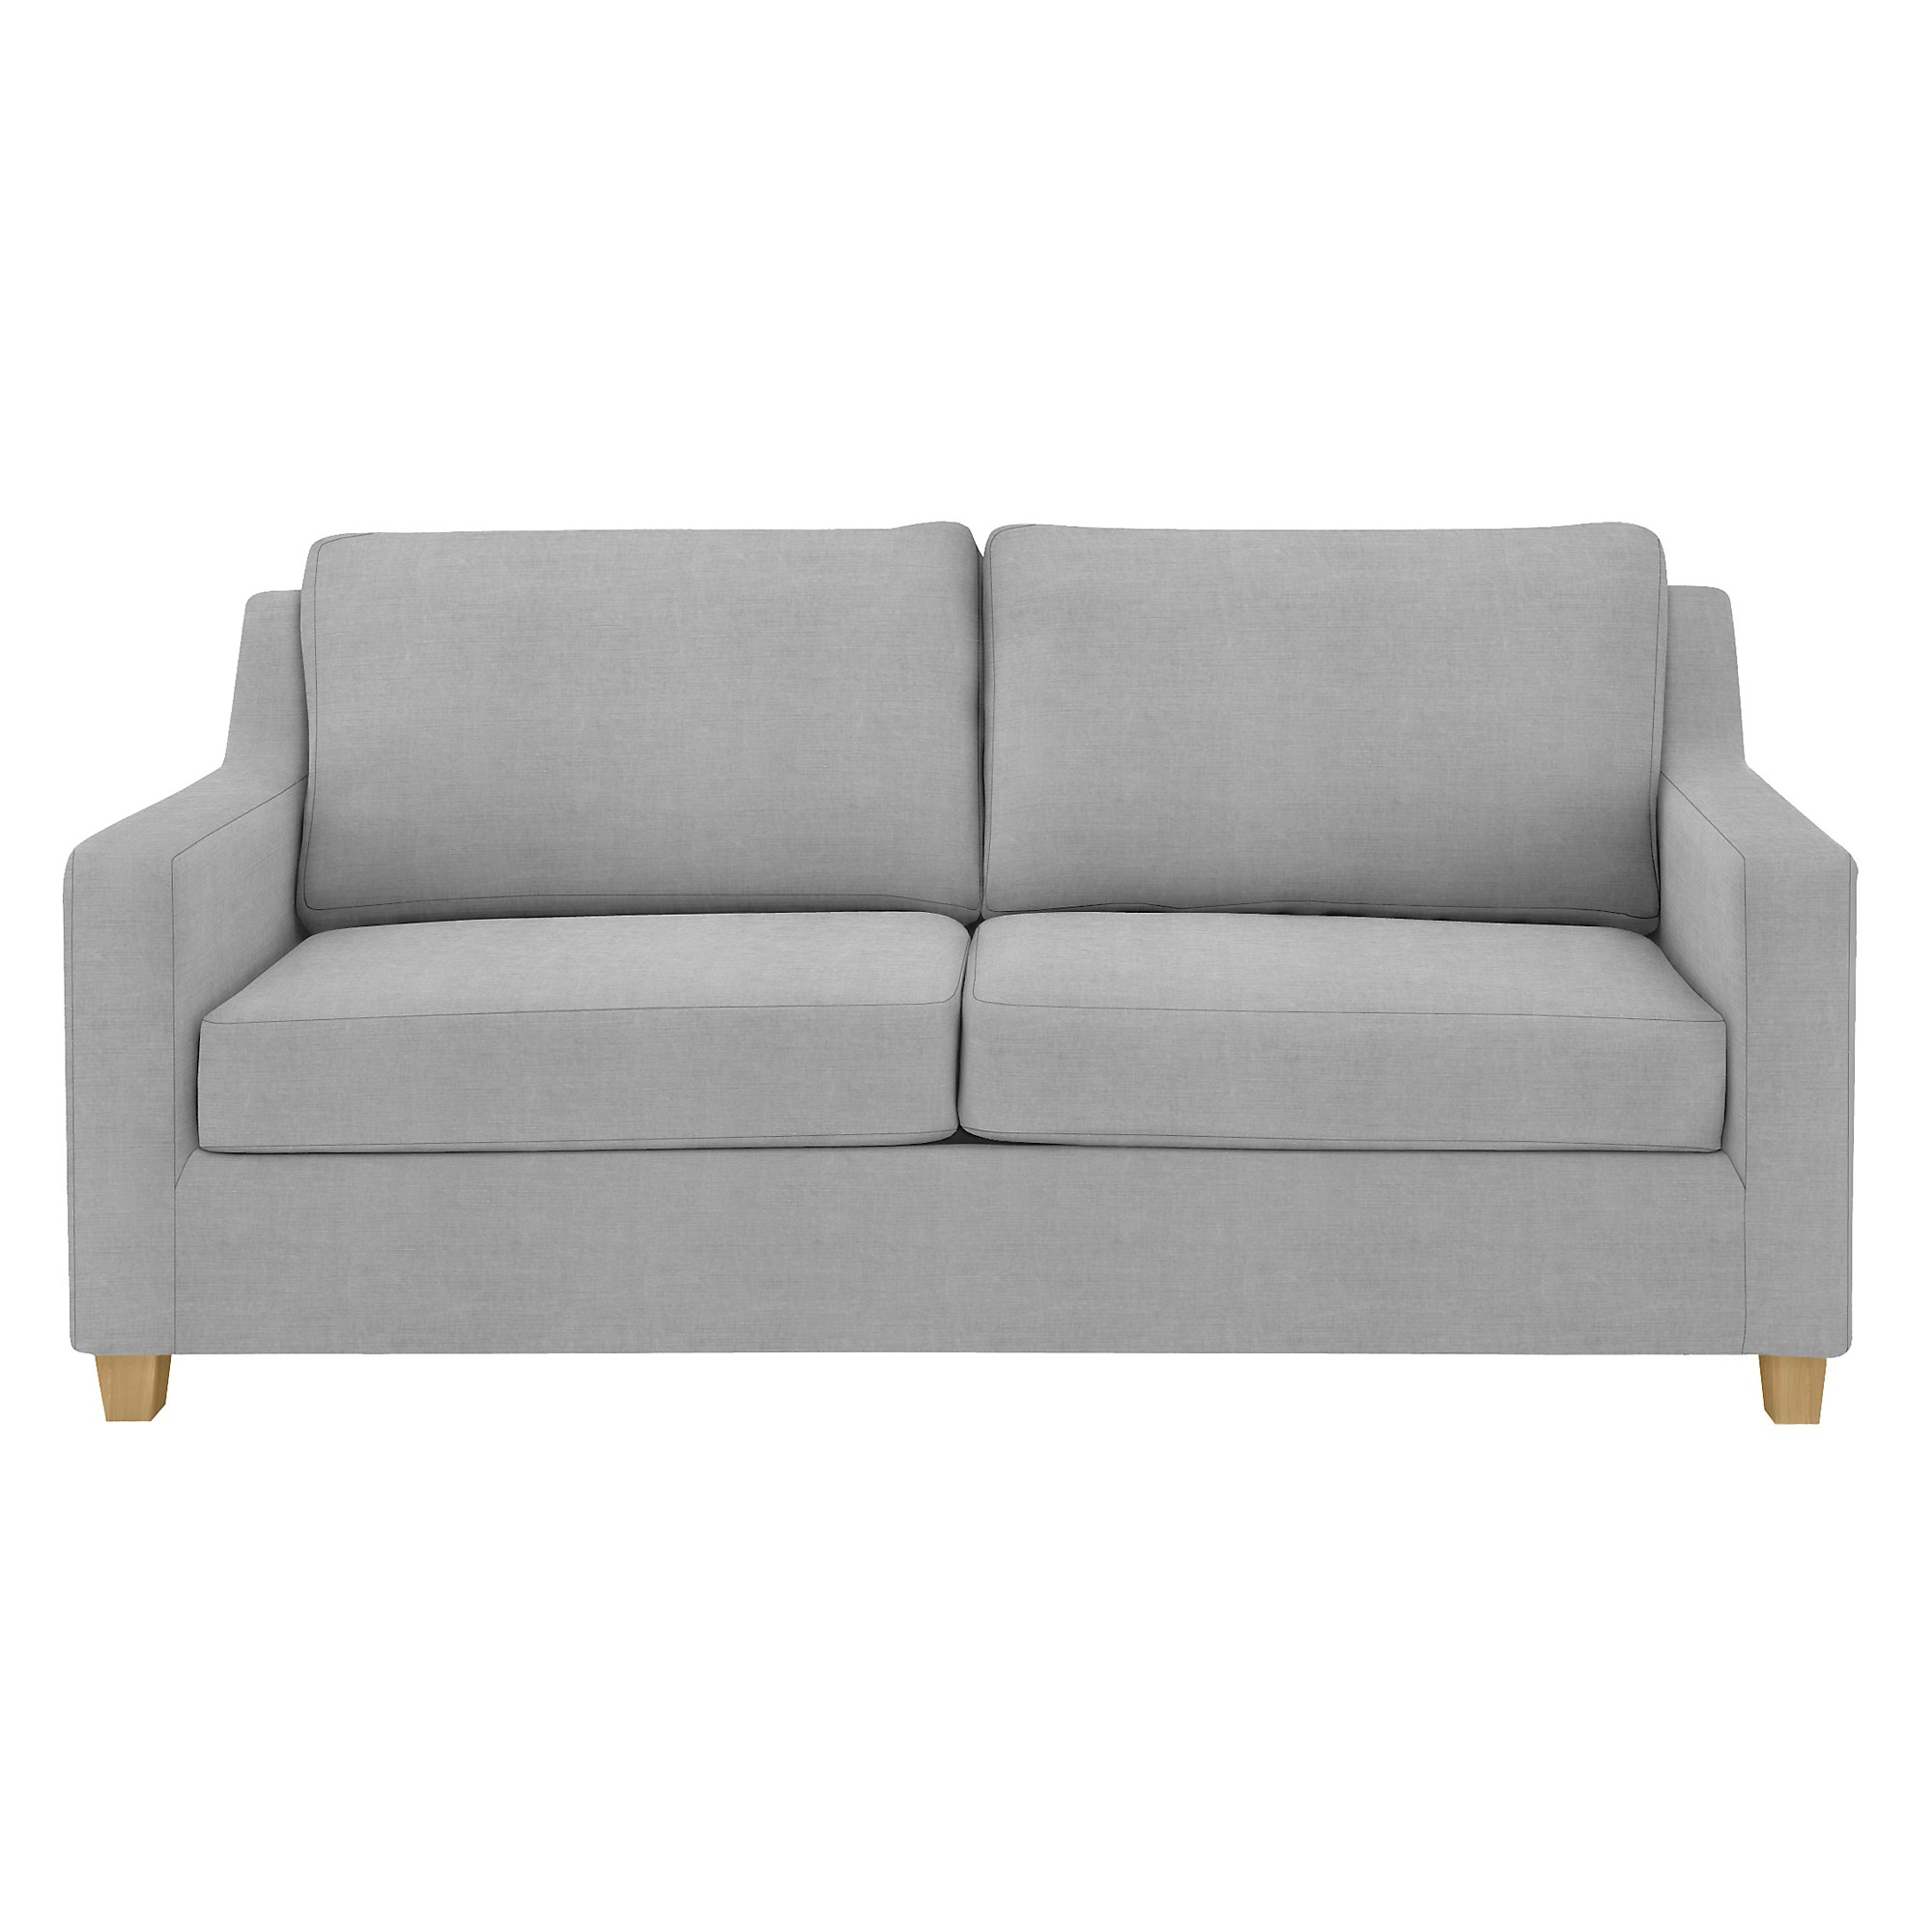 John Lewis Bizet Large Sofa Bed